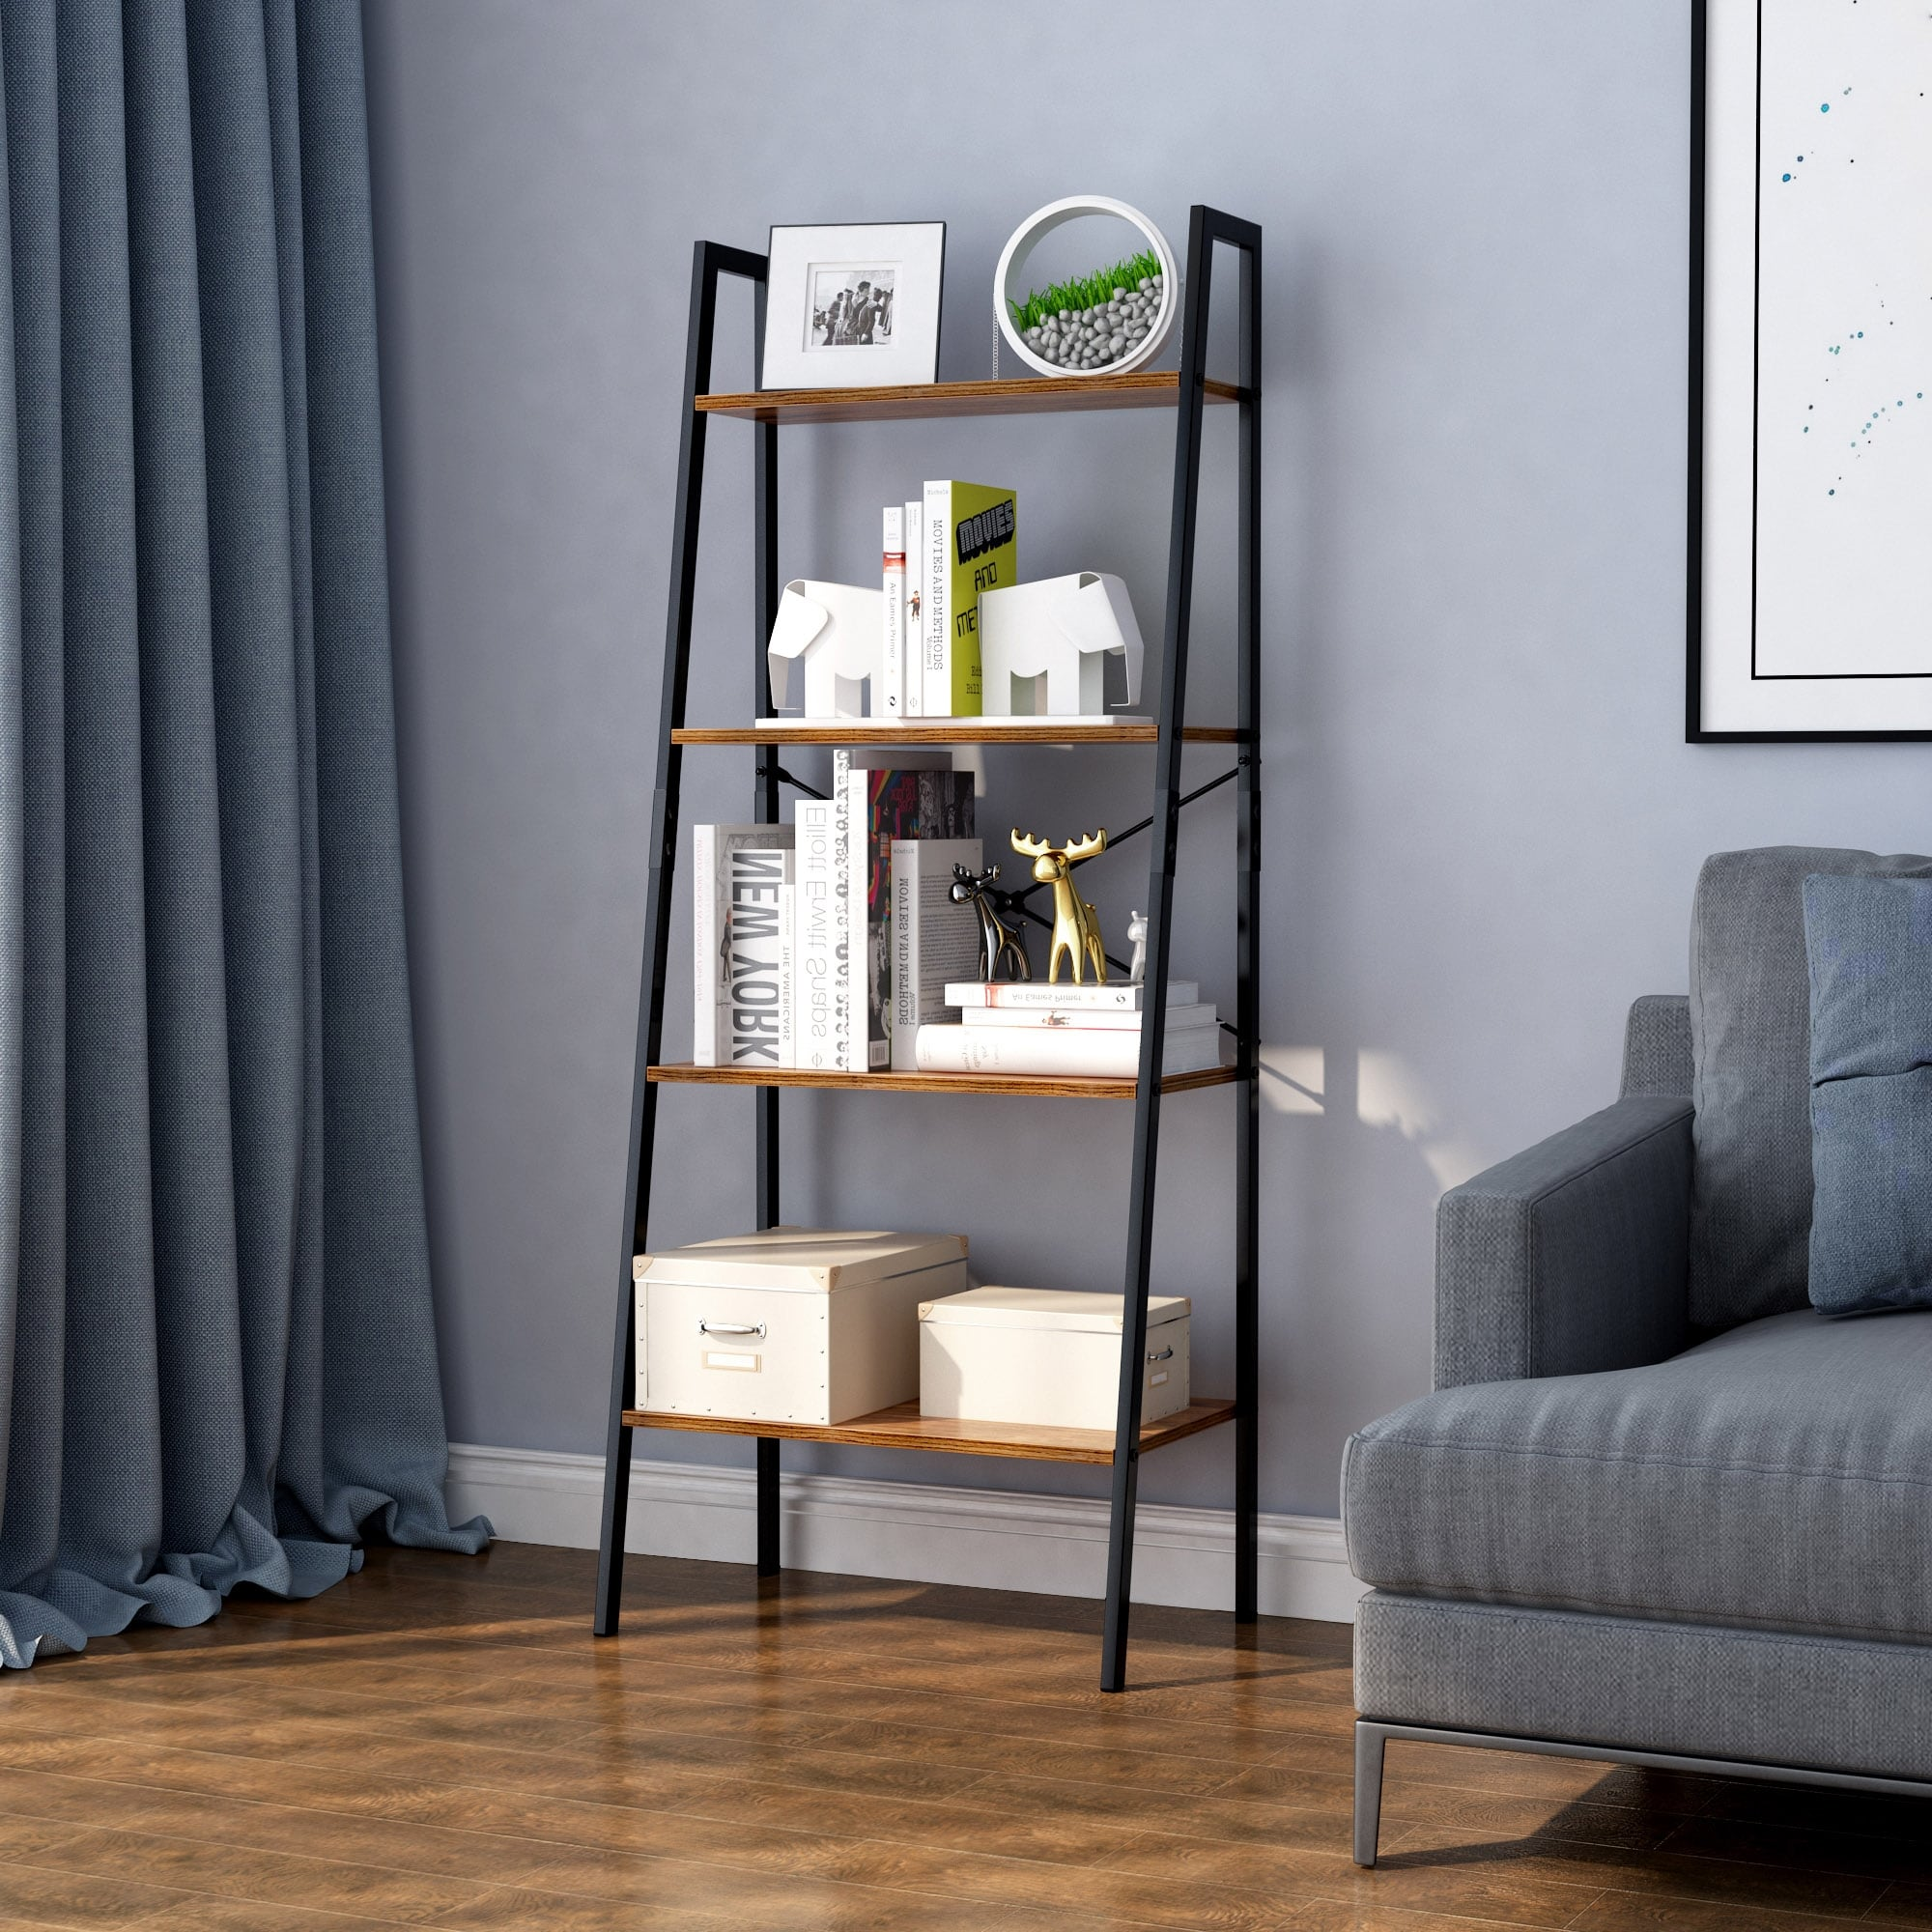 Langria 4 Tier Bookshelf Organizer With Resistant Black Metal Frame And Sturdy Multifunctional Antique Wood Design